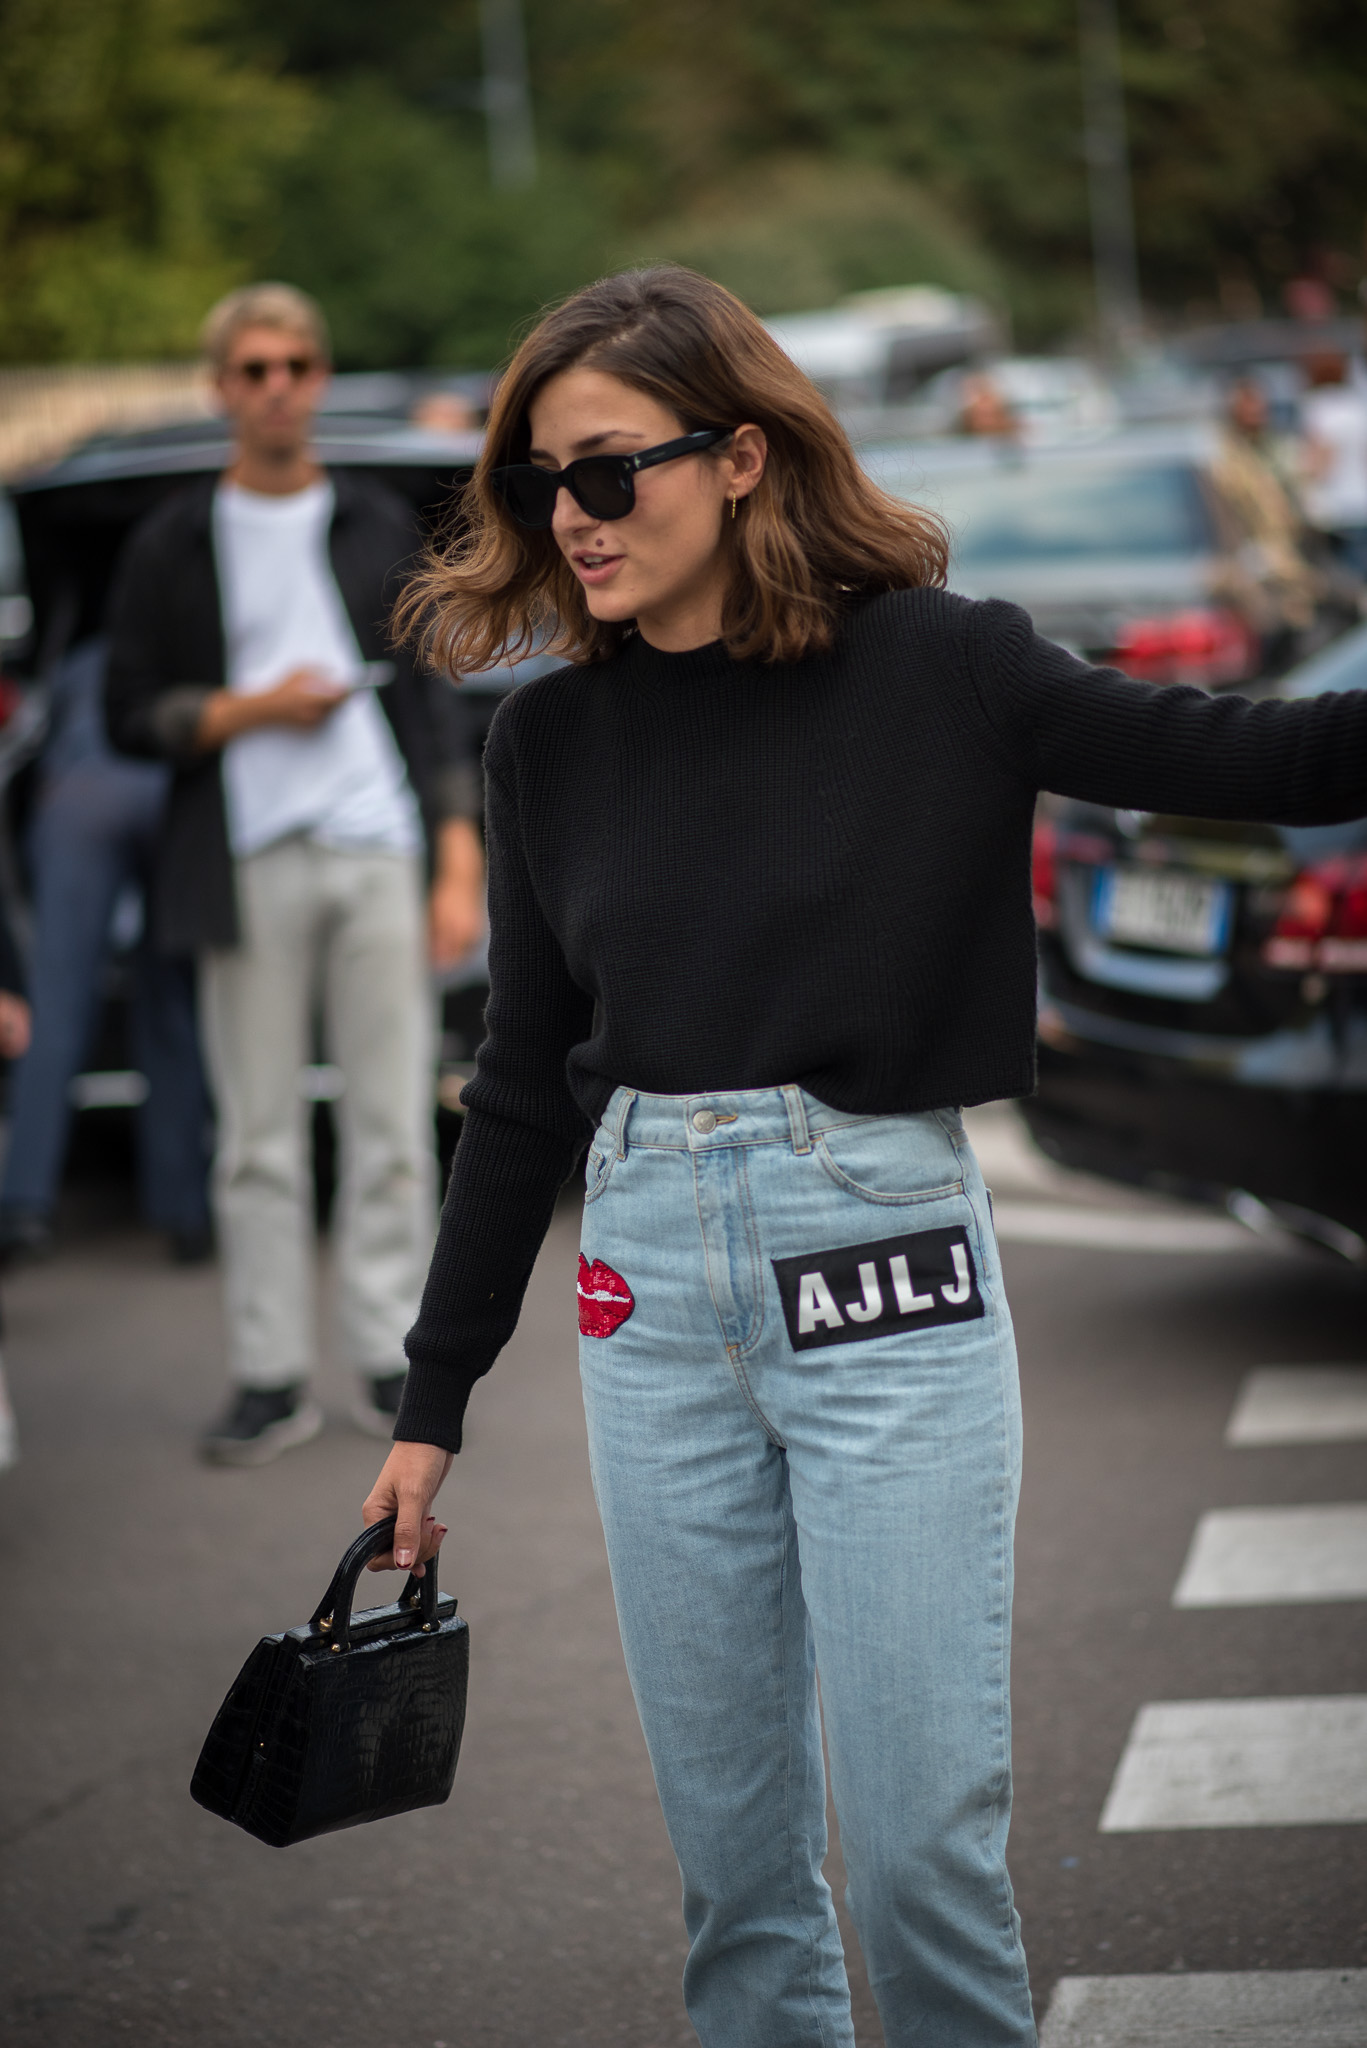 street-style_tods_milan-fashion-week_-sept-2016_www-annikasomething-com-3